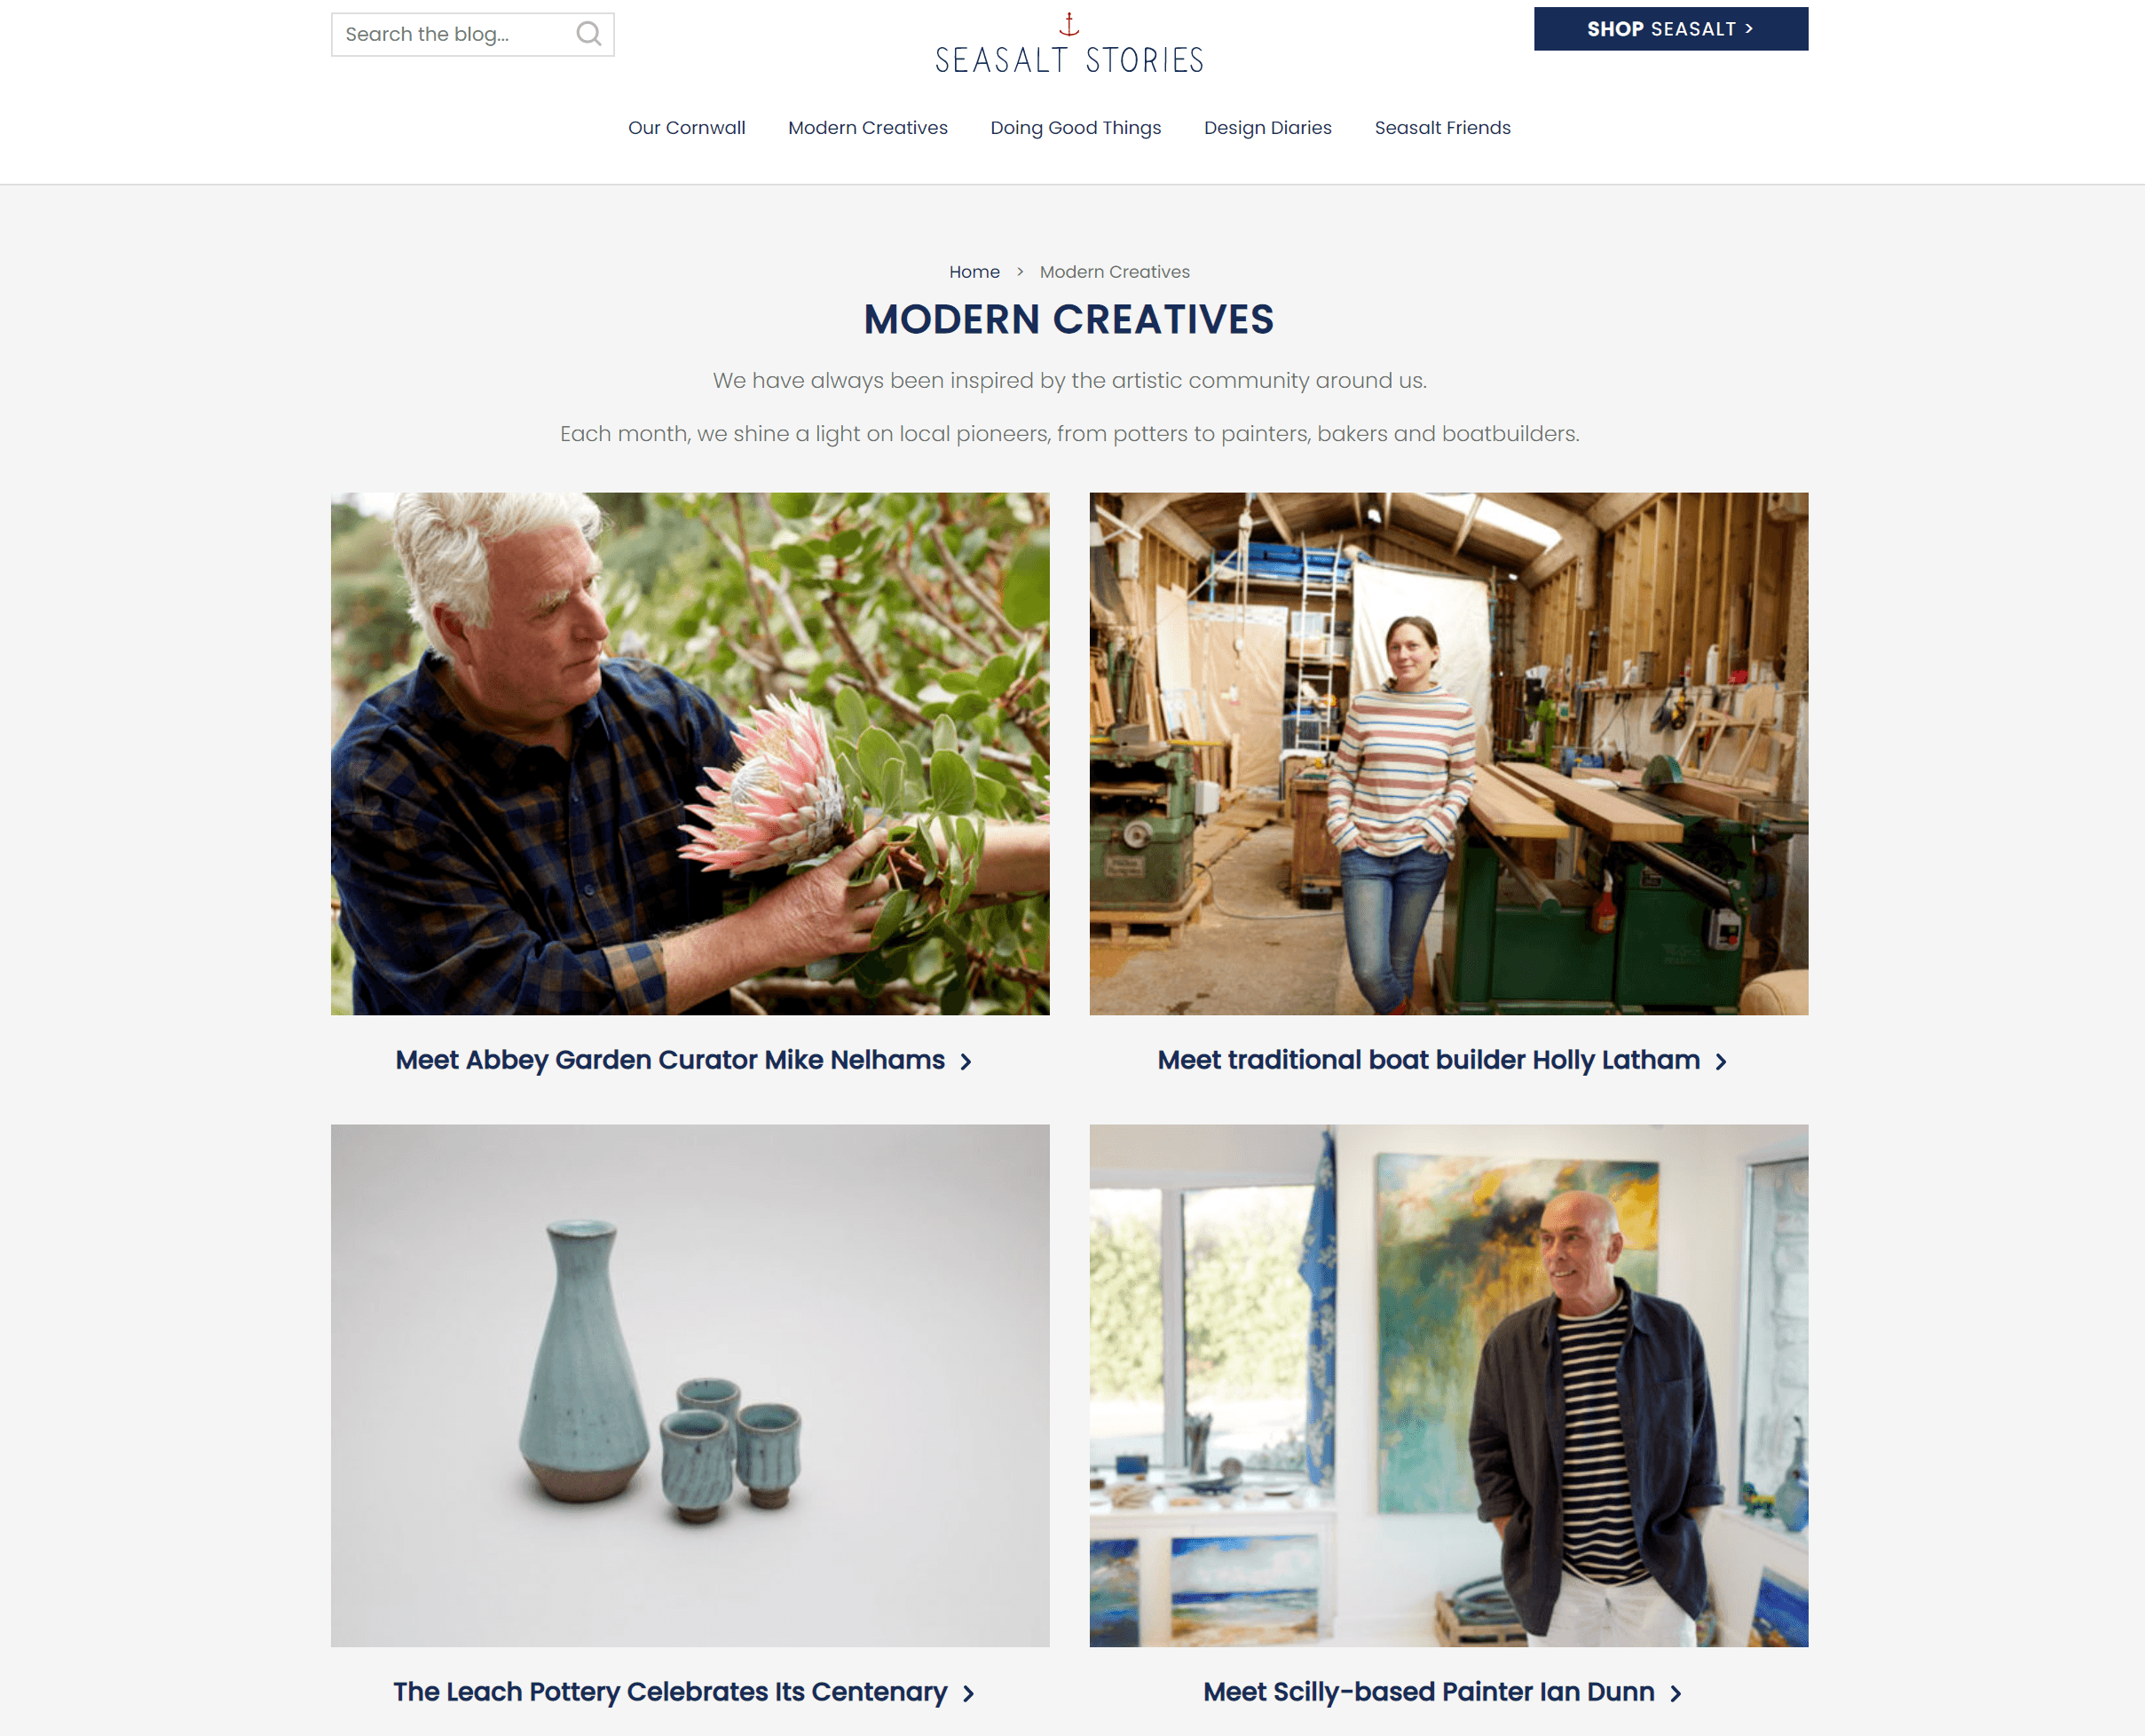 creenshot of the Modern Creatives category page on the Seasalt blog.